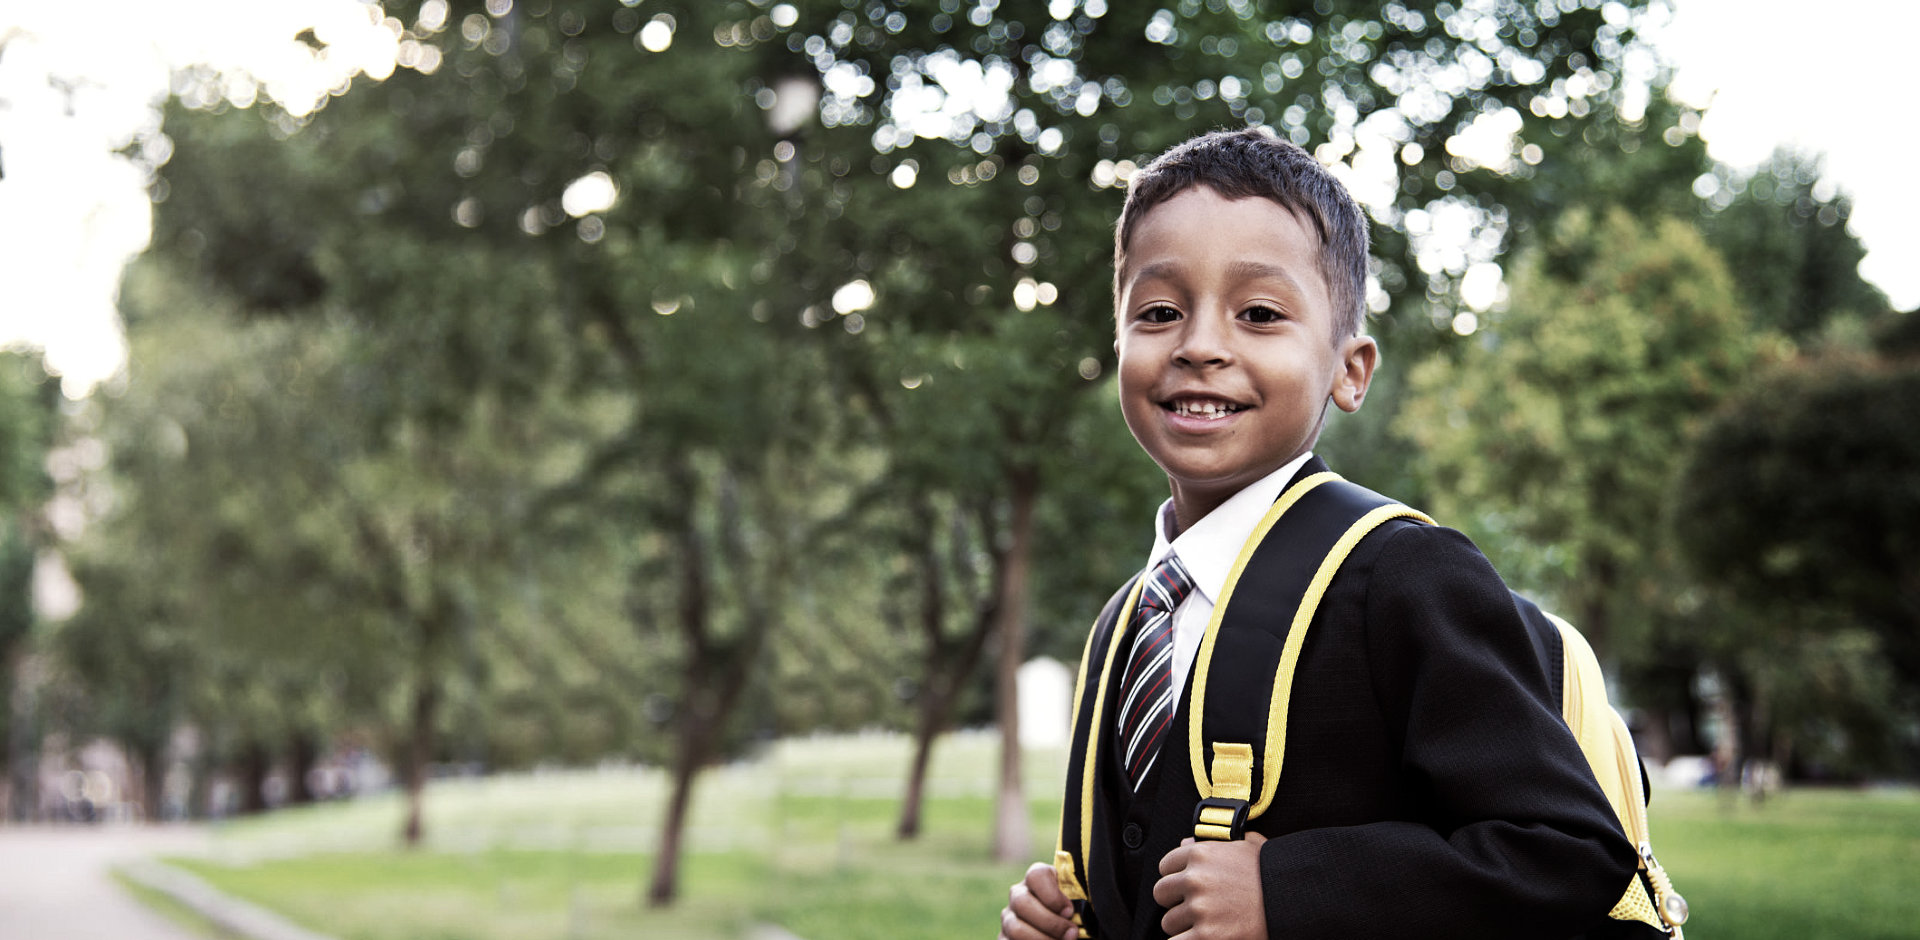 smiling little boy wearing a formal attire with bag